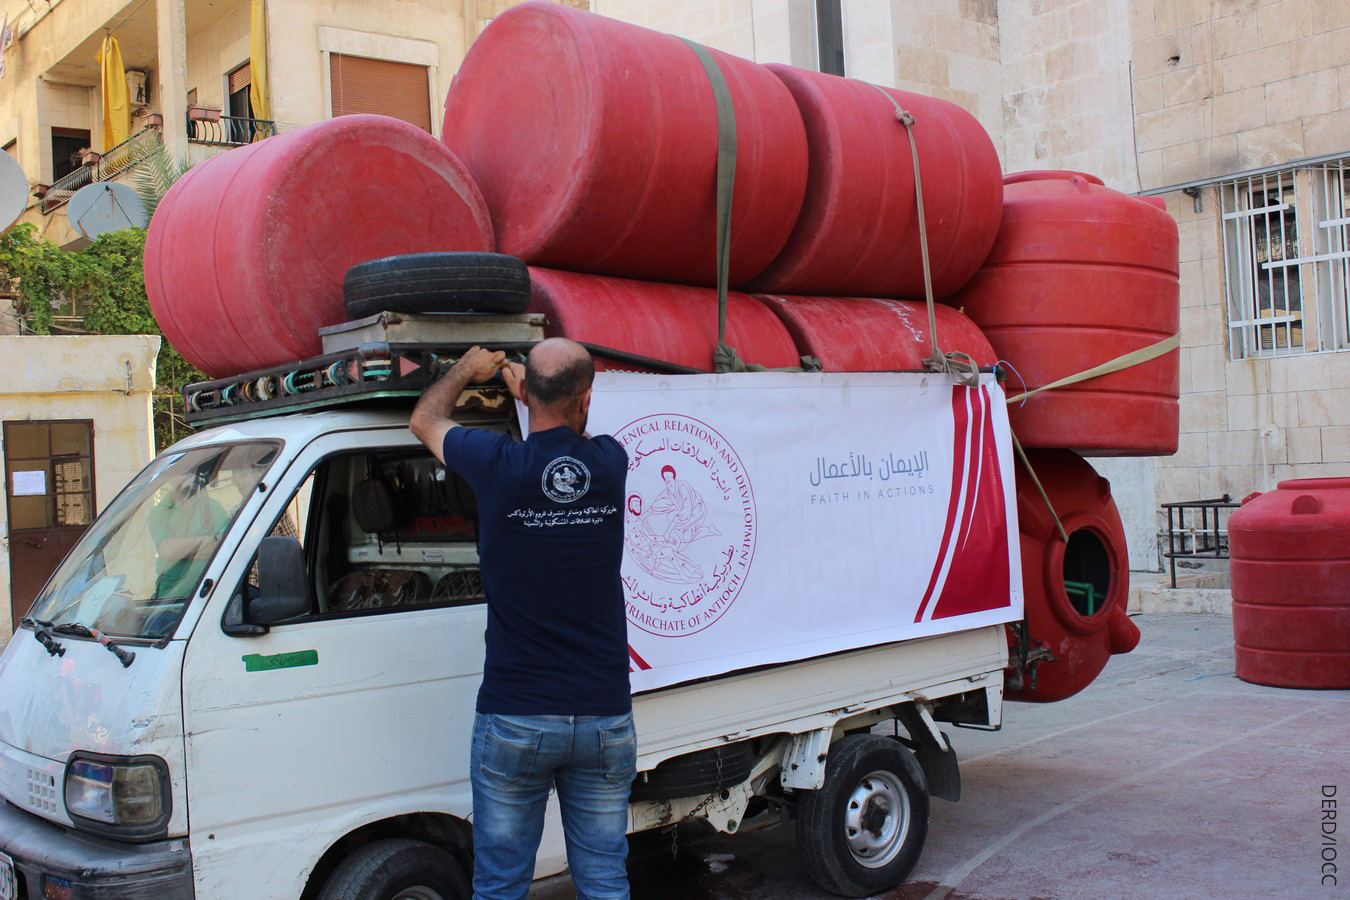 The civil war ravaging Syria has left two million people in the city of Aleppo without running water. IOCC with its Syria partner, DERD, the humanitarian arm of the Greek Orthodox Patriarchate of Antioch, is addressing the ongoing water crisis in war-torn Aleppo by delivering heavy duty water storage tanks to the homes of hundreds of displaced and affected families. photo: DERD/IOCC